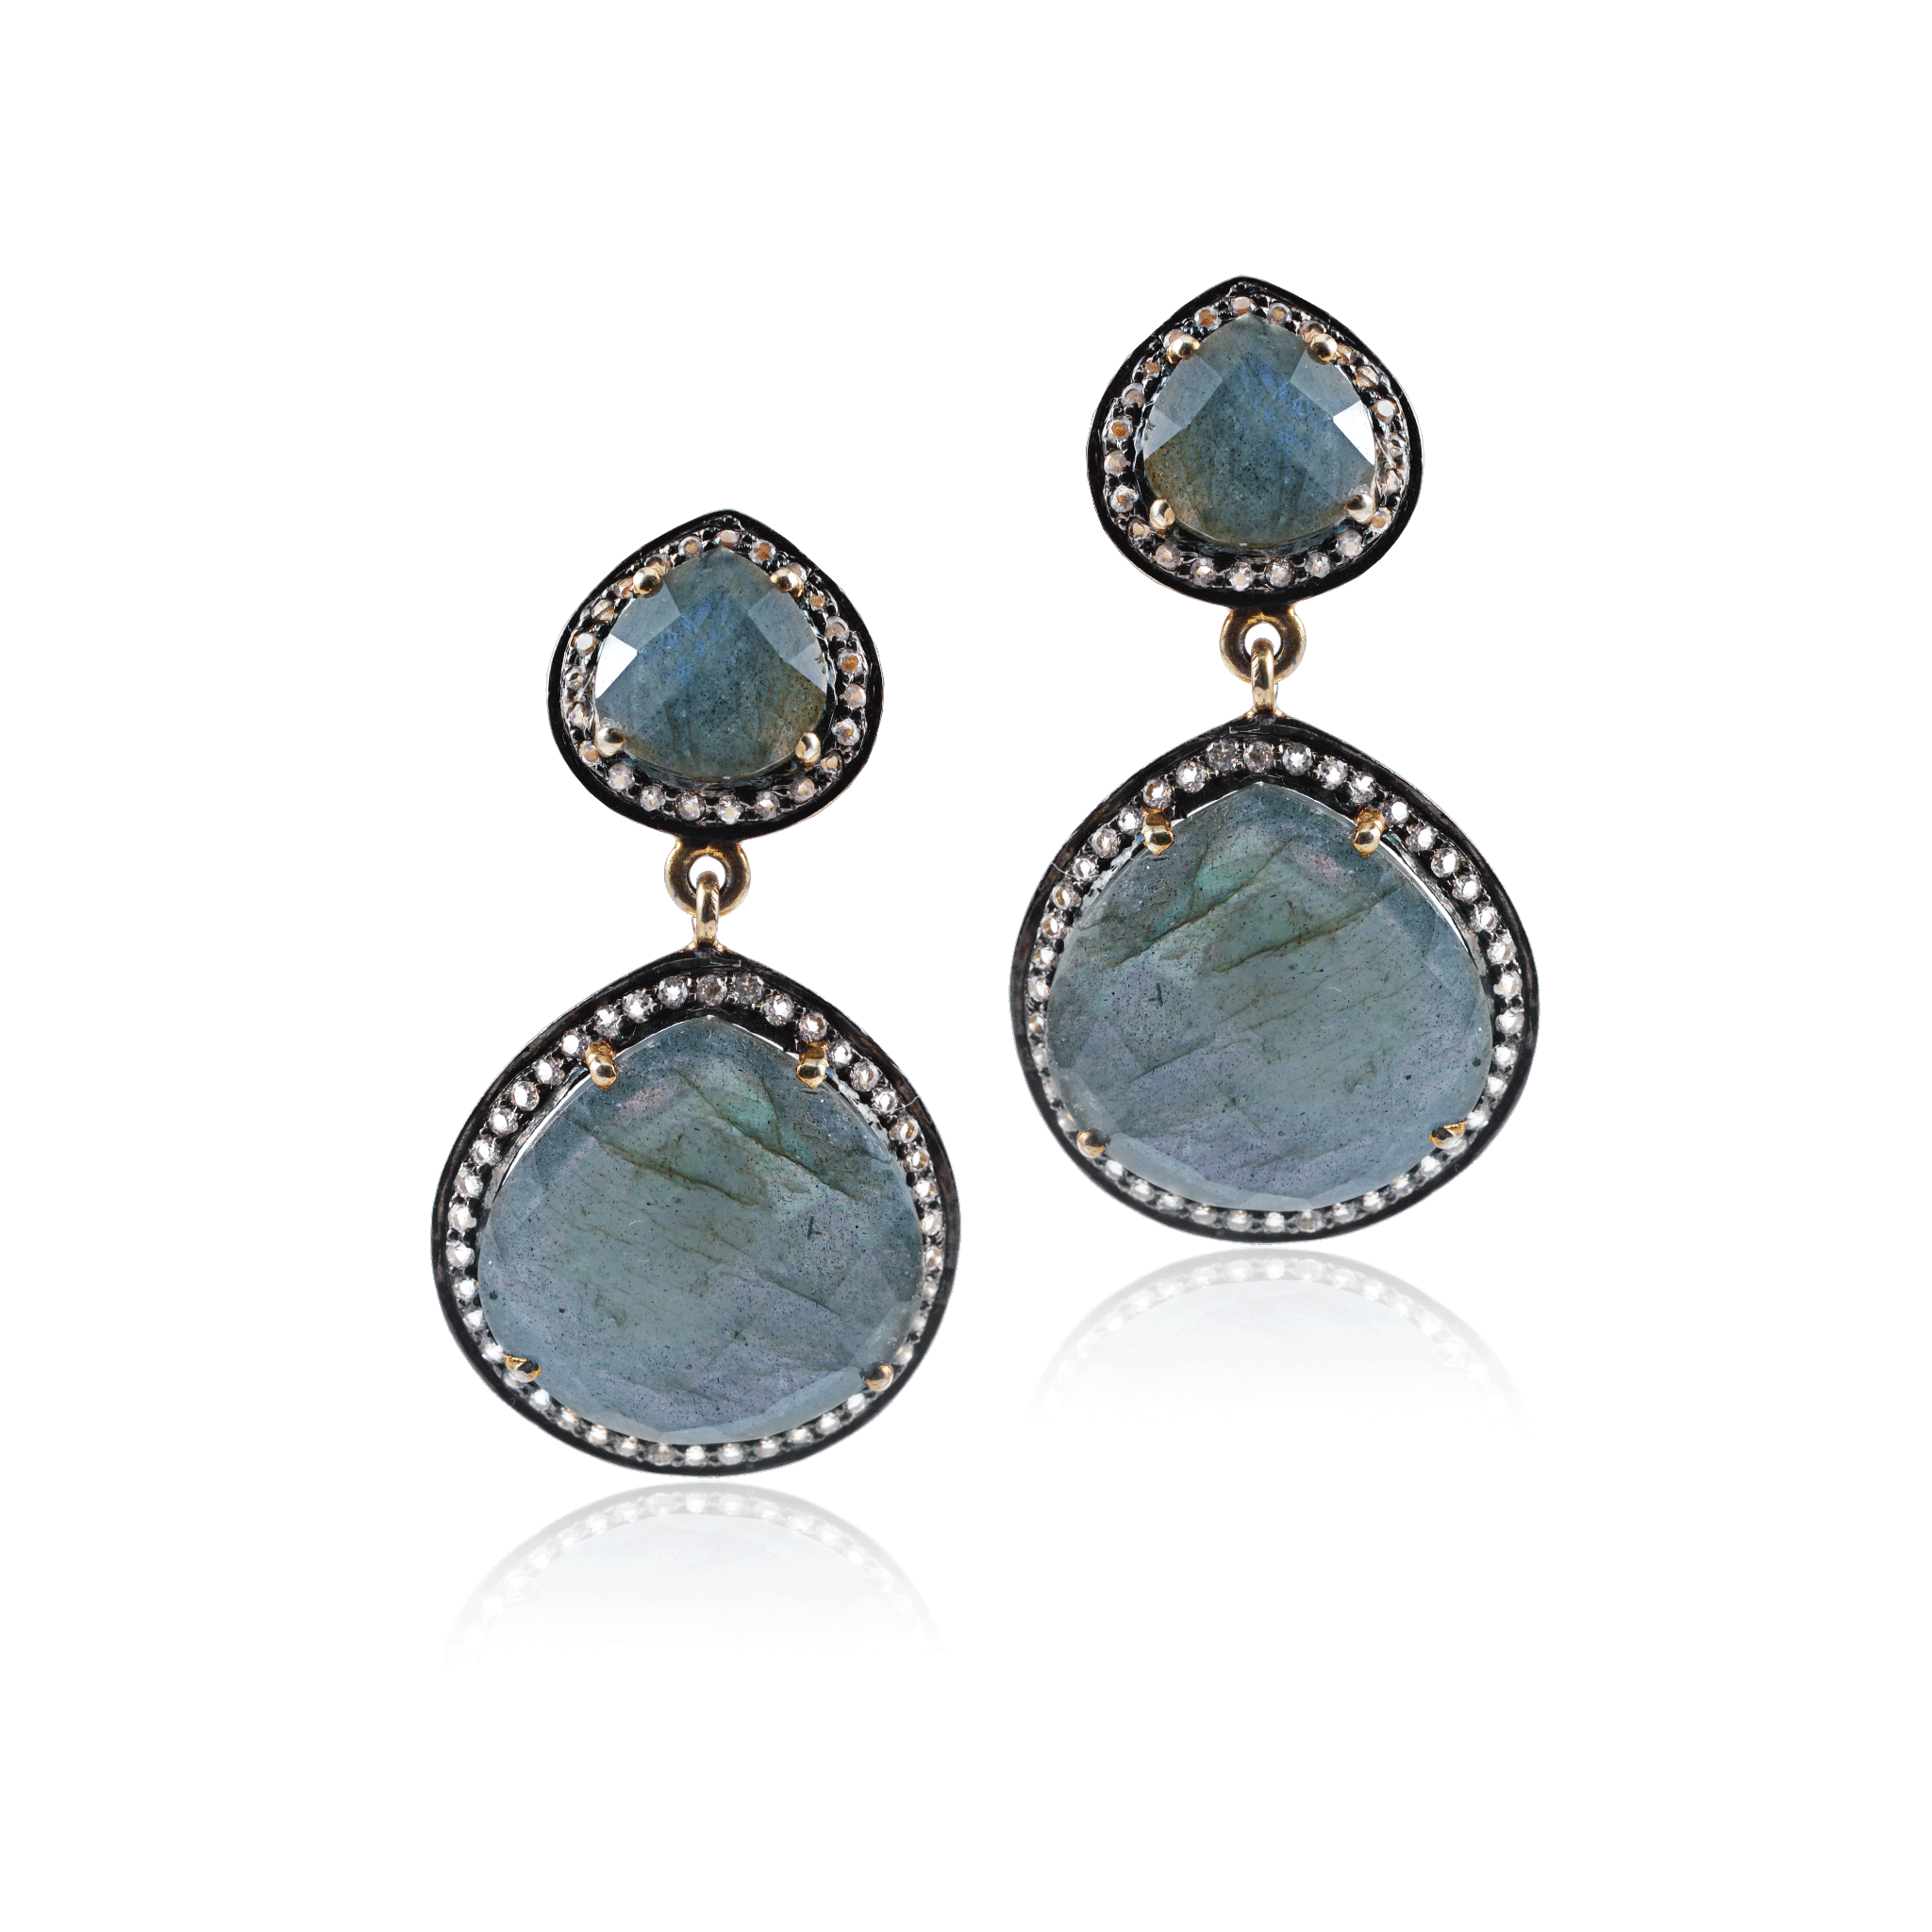 A.JARON Loves Labradorite